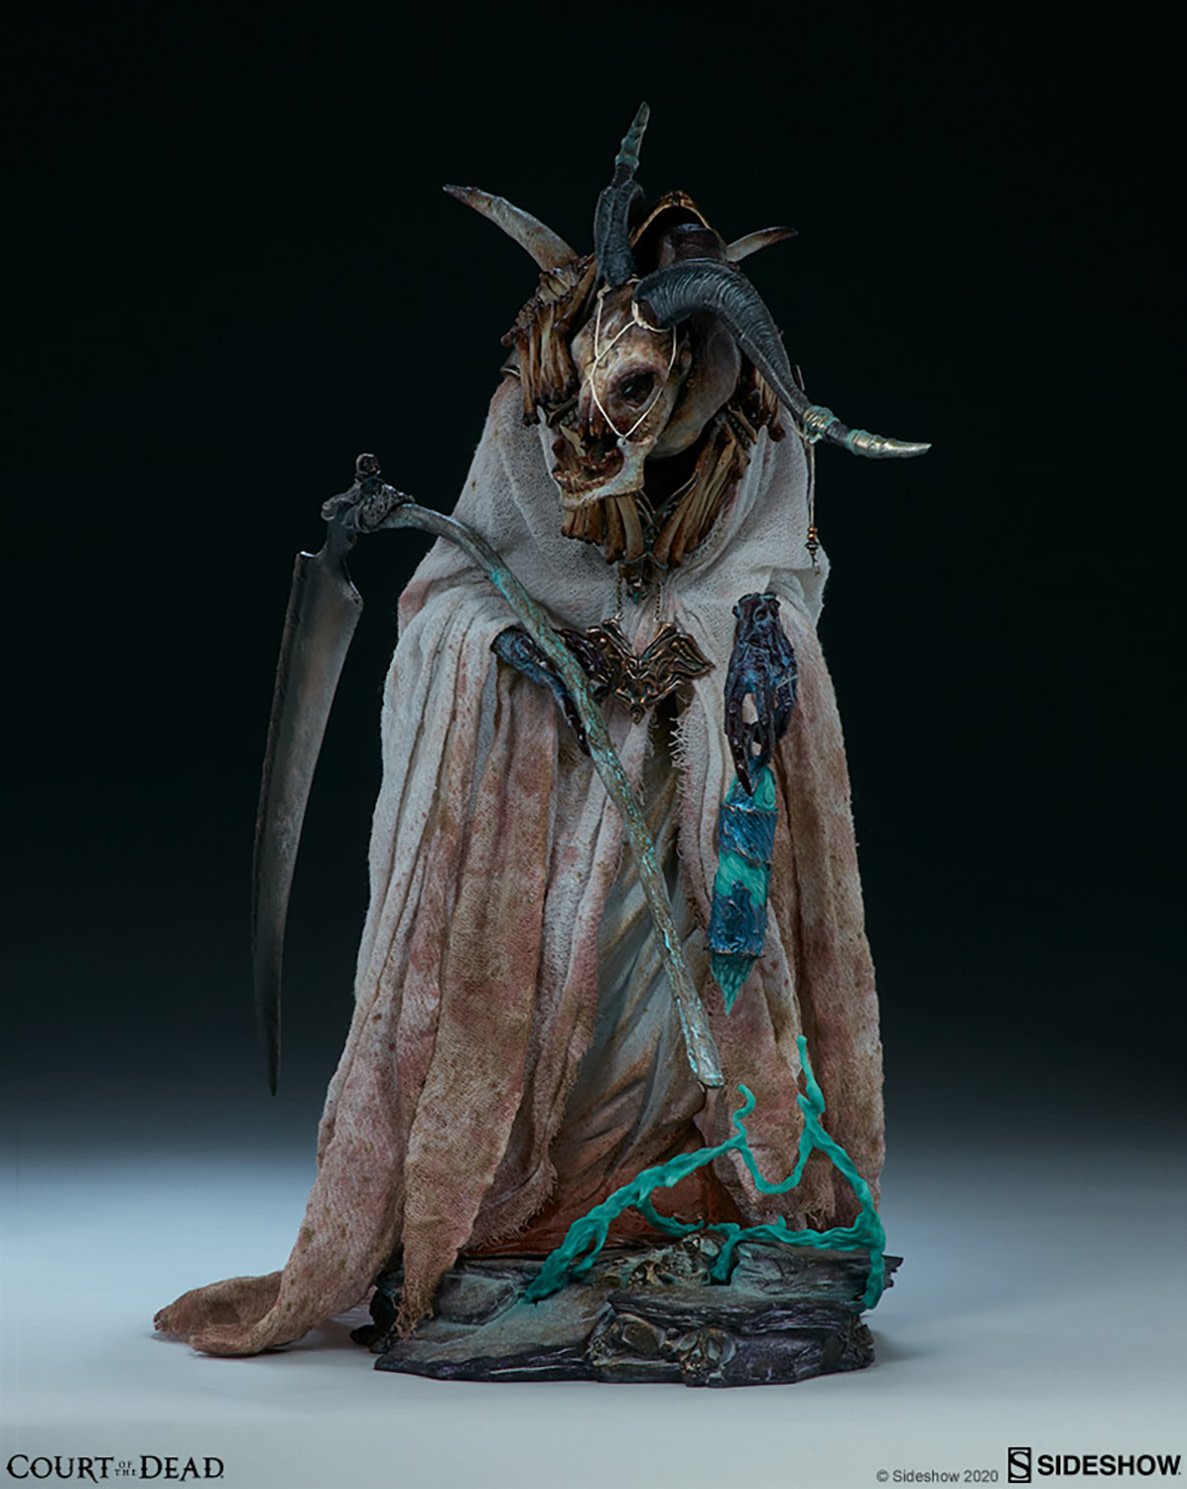 Sideshow Toys Court of the Dead: Shieve the Pathfinder Premium 1:4 Scale Statue